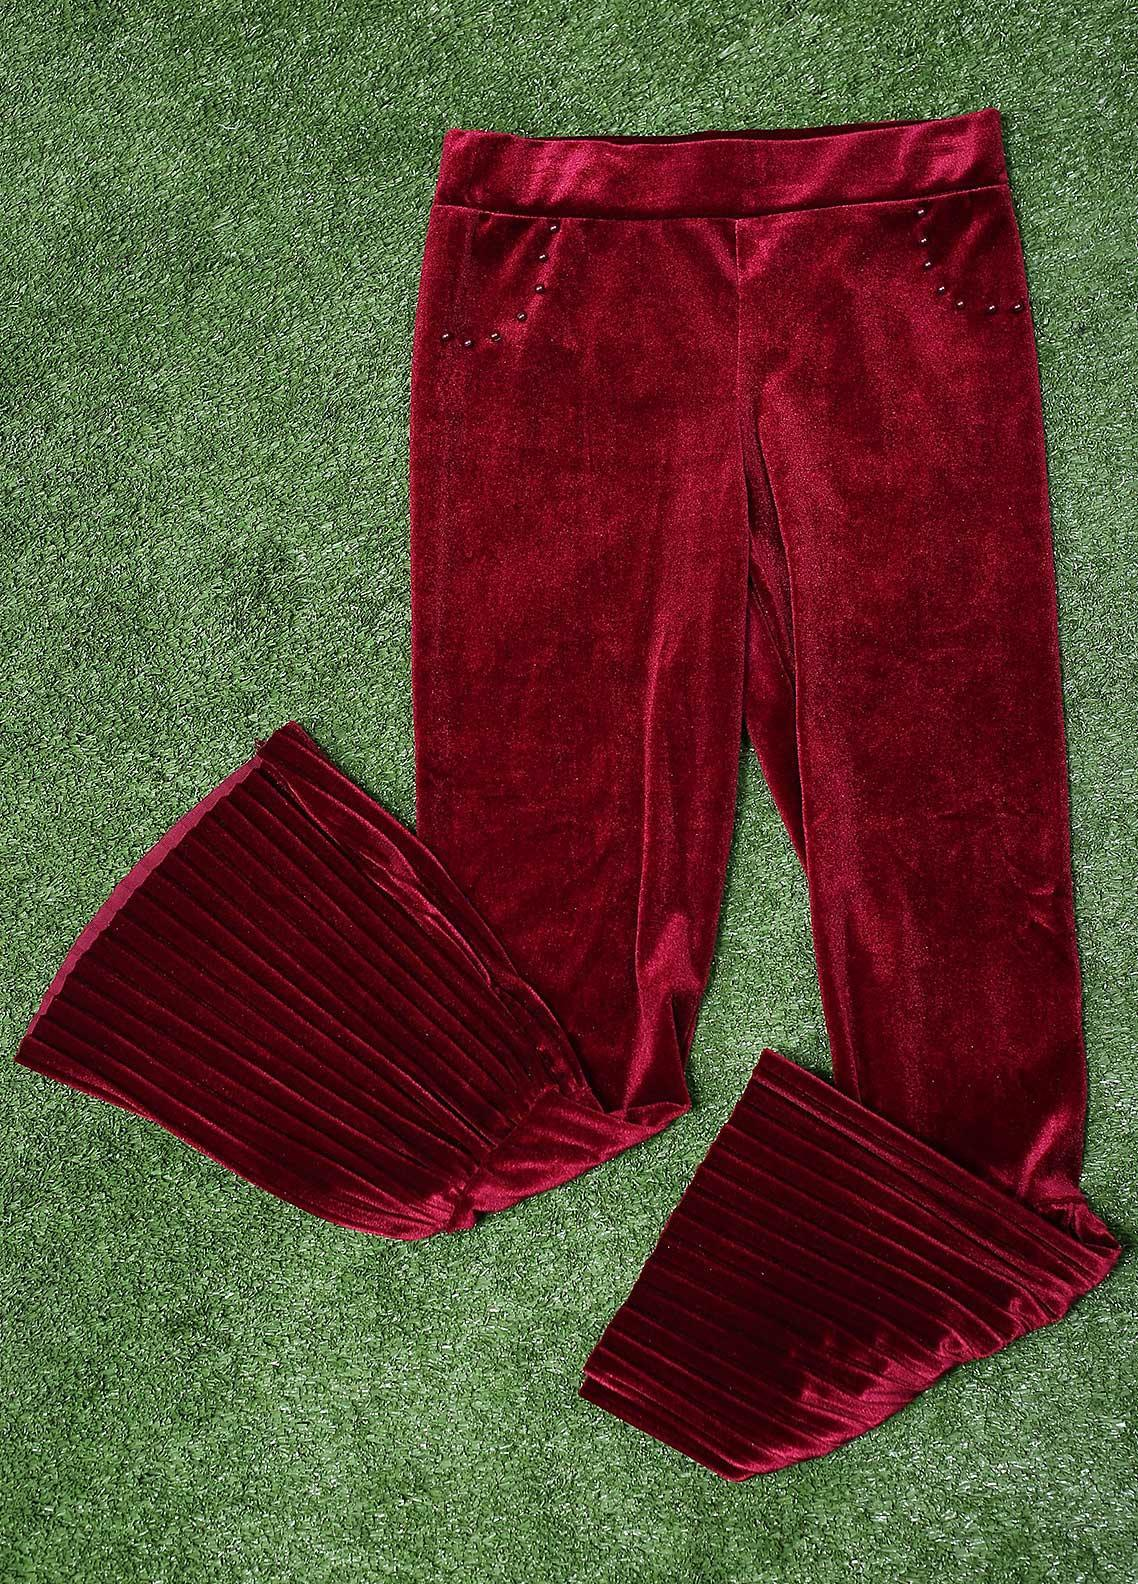 Sanaulla Exclusive Range Fancy Velvet Stitched Tights 3013 Maroon